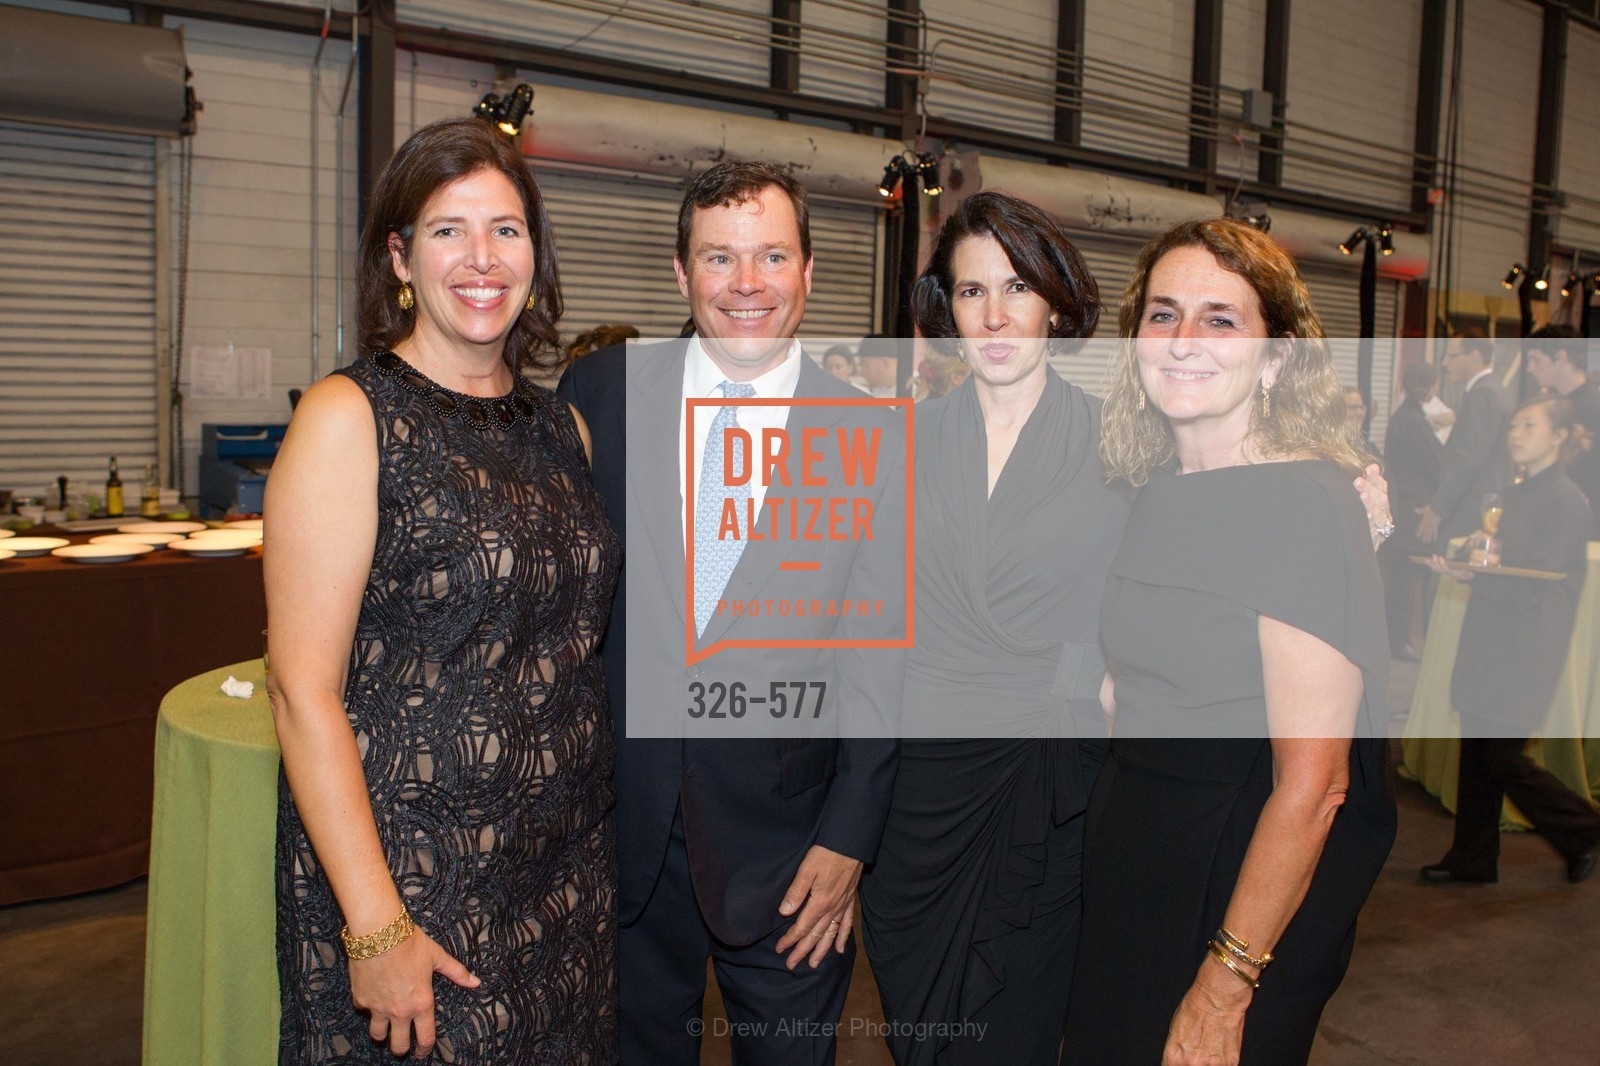 Kate Hanson, Scott Ferguson, Ruth Uchimura, Cynthia Burmingham, SF-MARIN FOOD BANK One Big Table Gala, US, September 27th, 2014,Drew Altizer, Drew Altizer Photography, full-service agency, private events, San Francisco photographer, photographer california